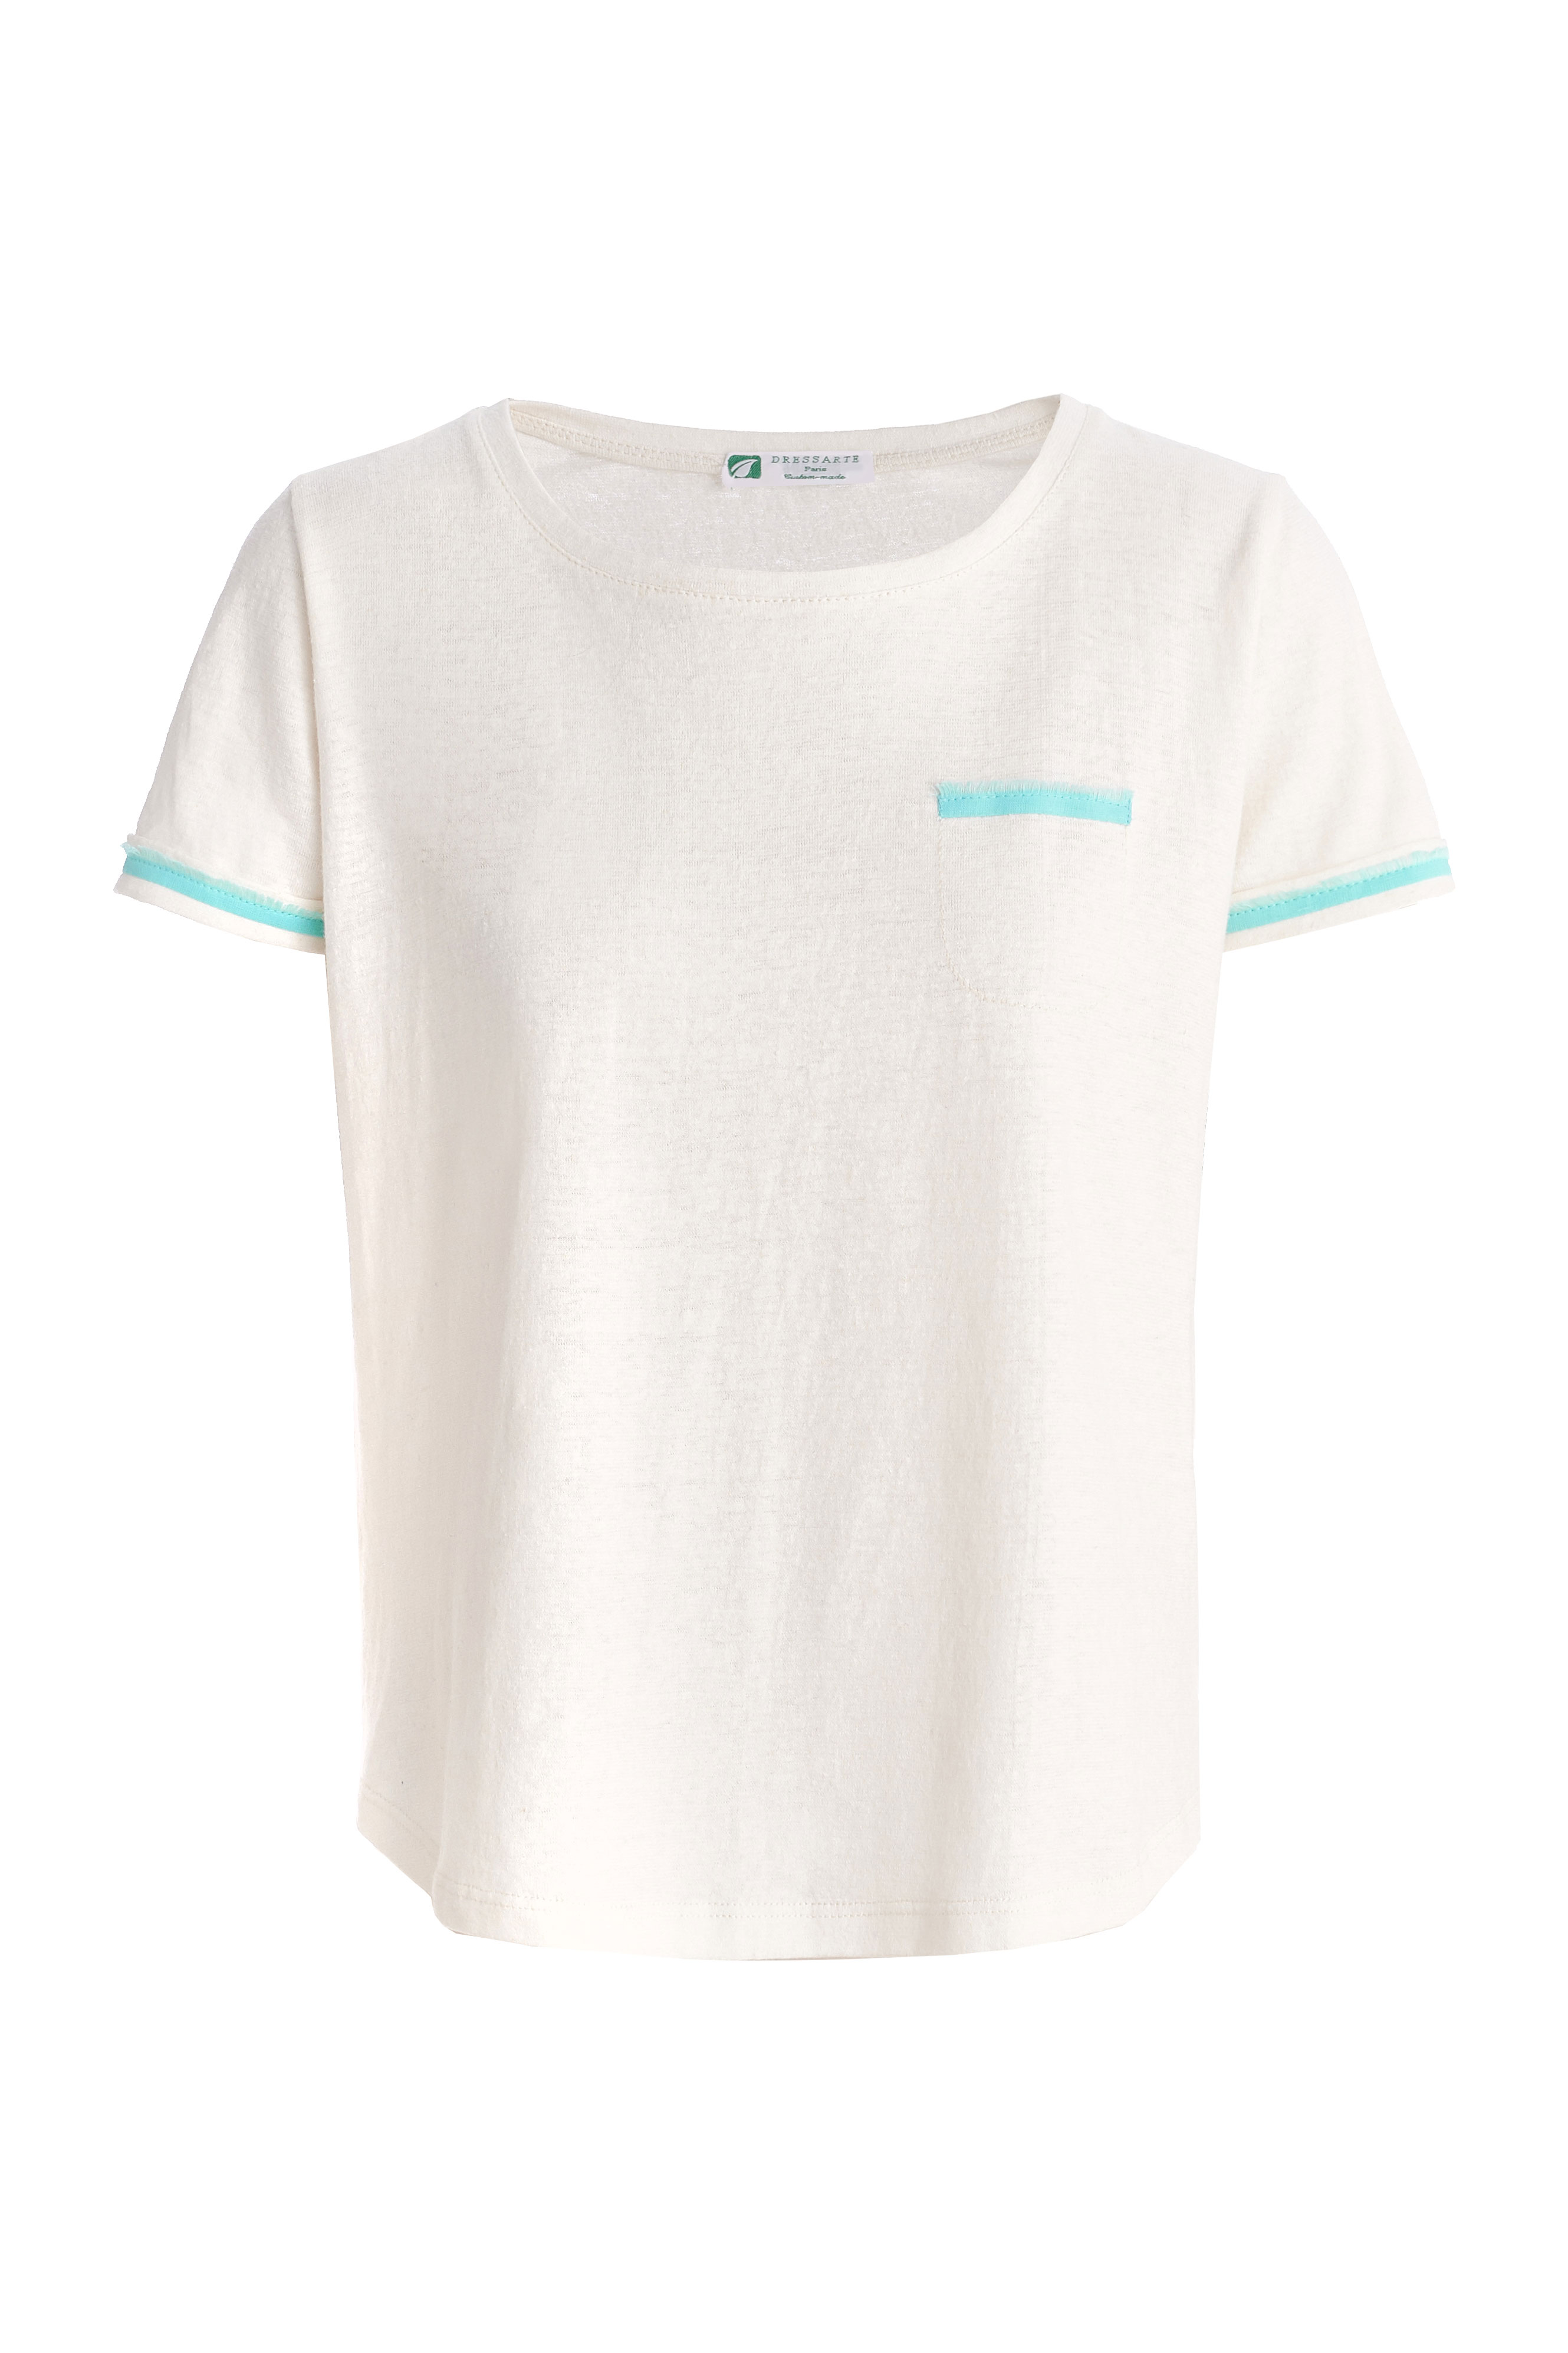 Organic-cotton-hemp-elegant-women-tshirt